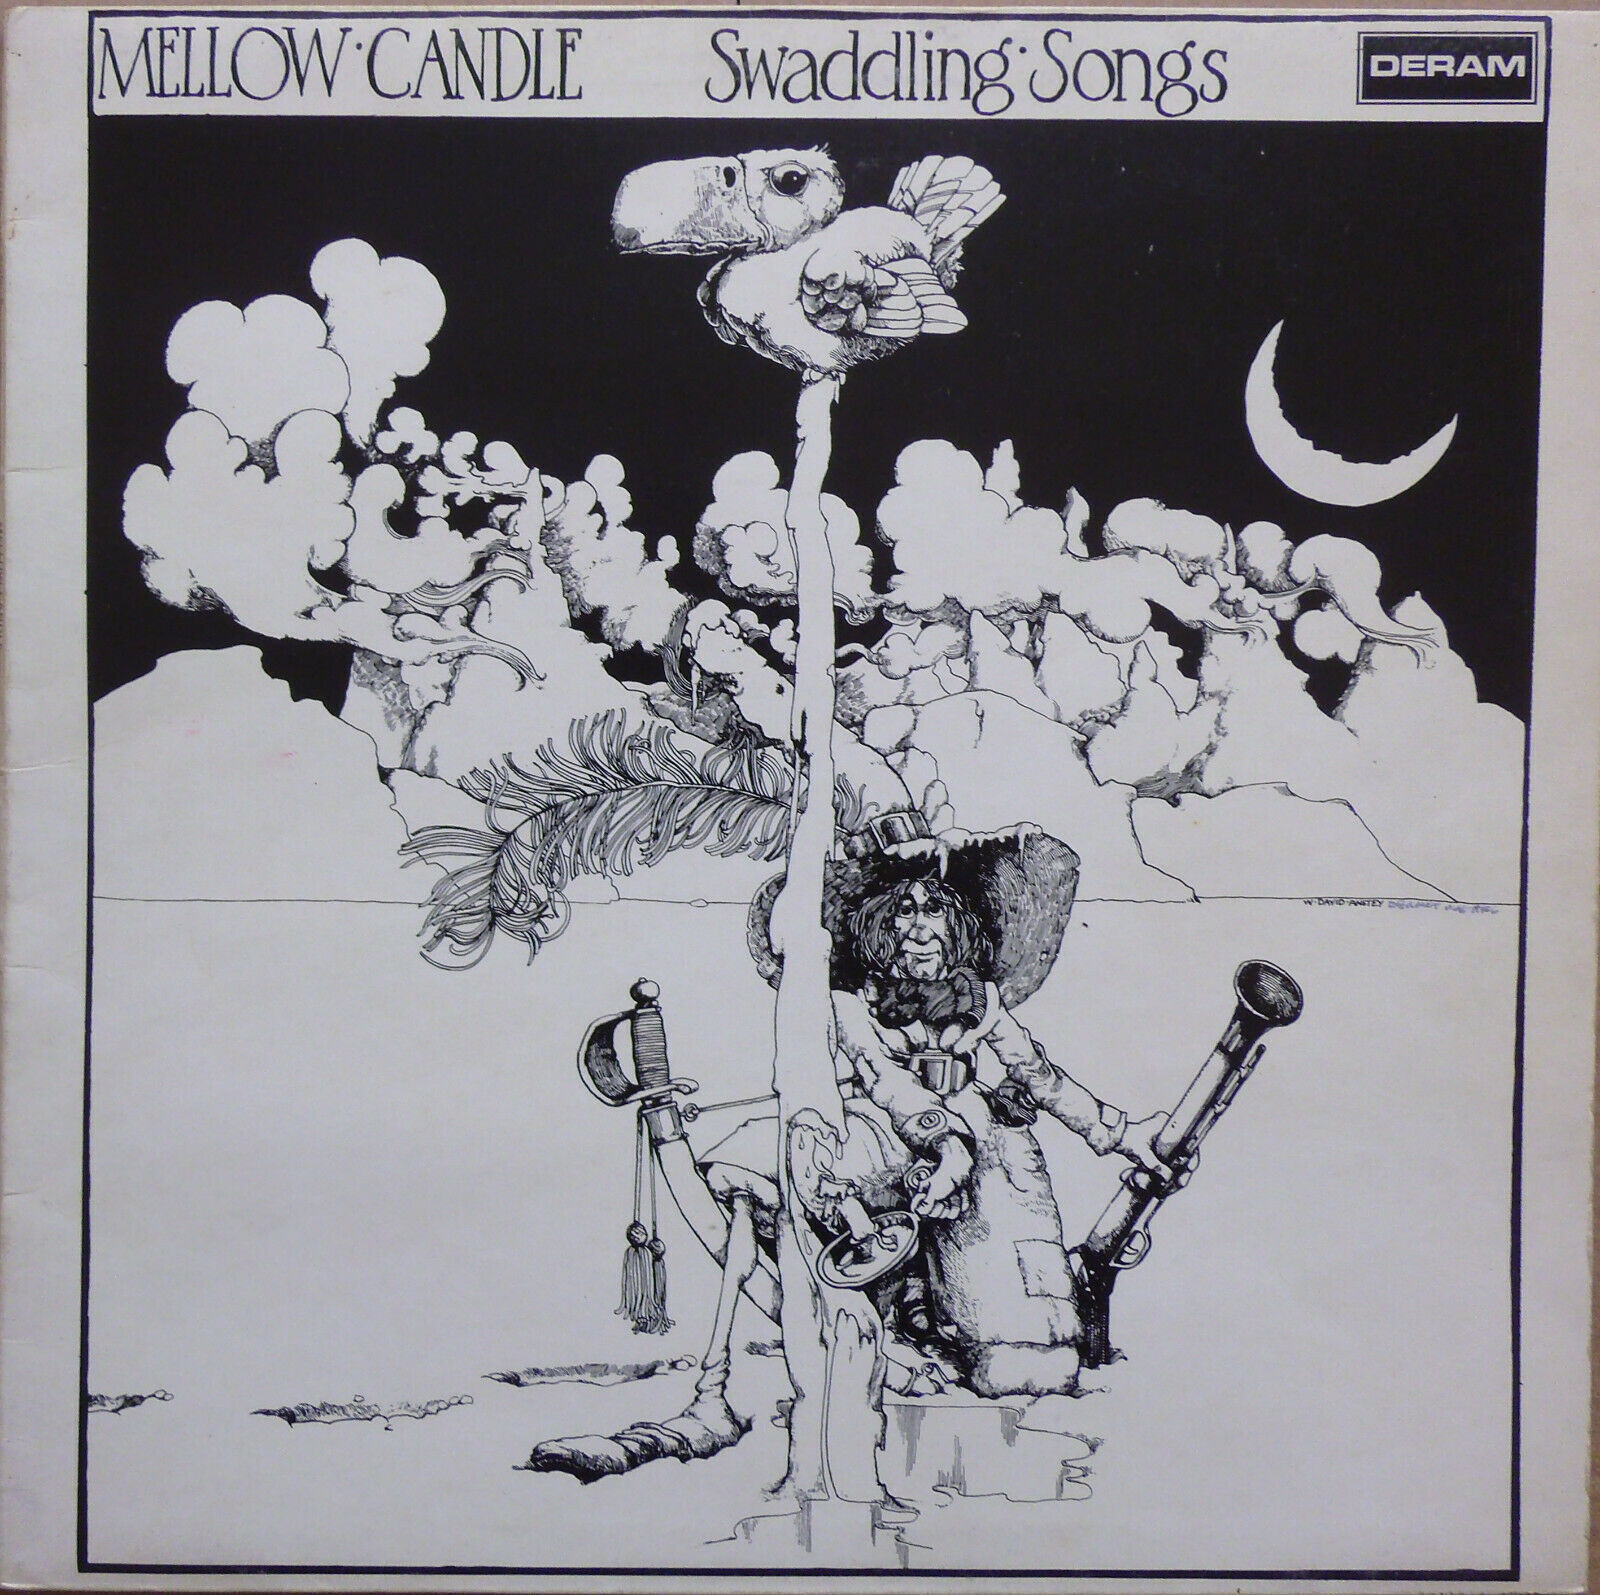 Mellow Candle - Swaddling Songs -  1972 UK First Pressing